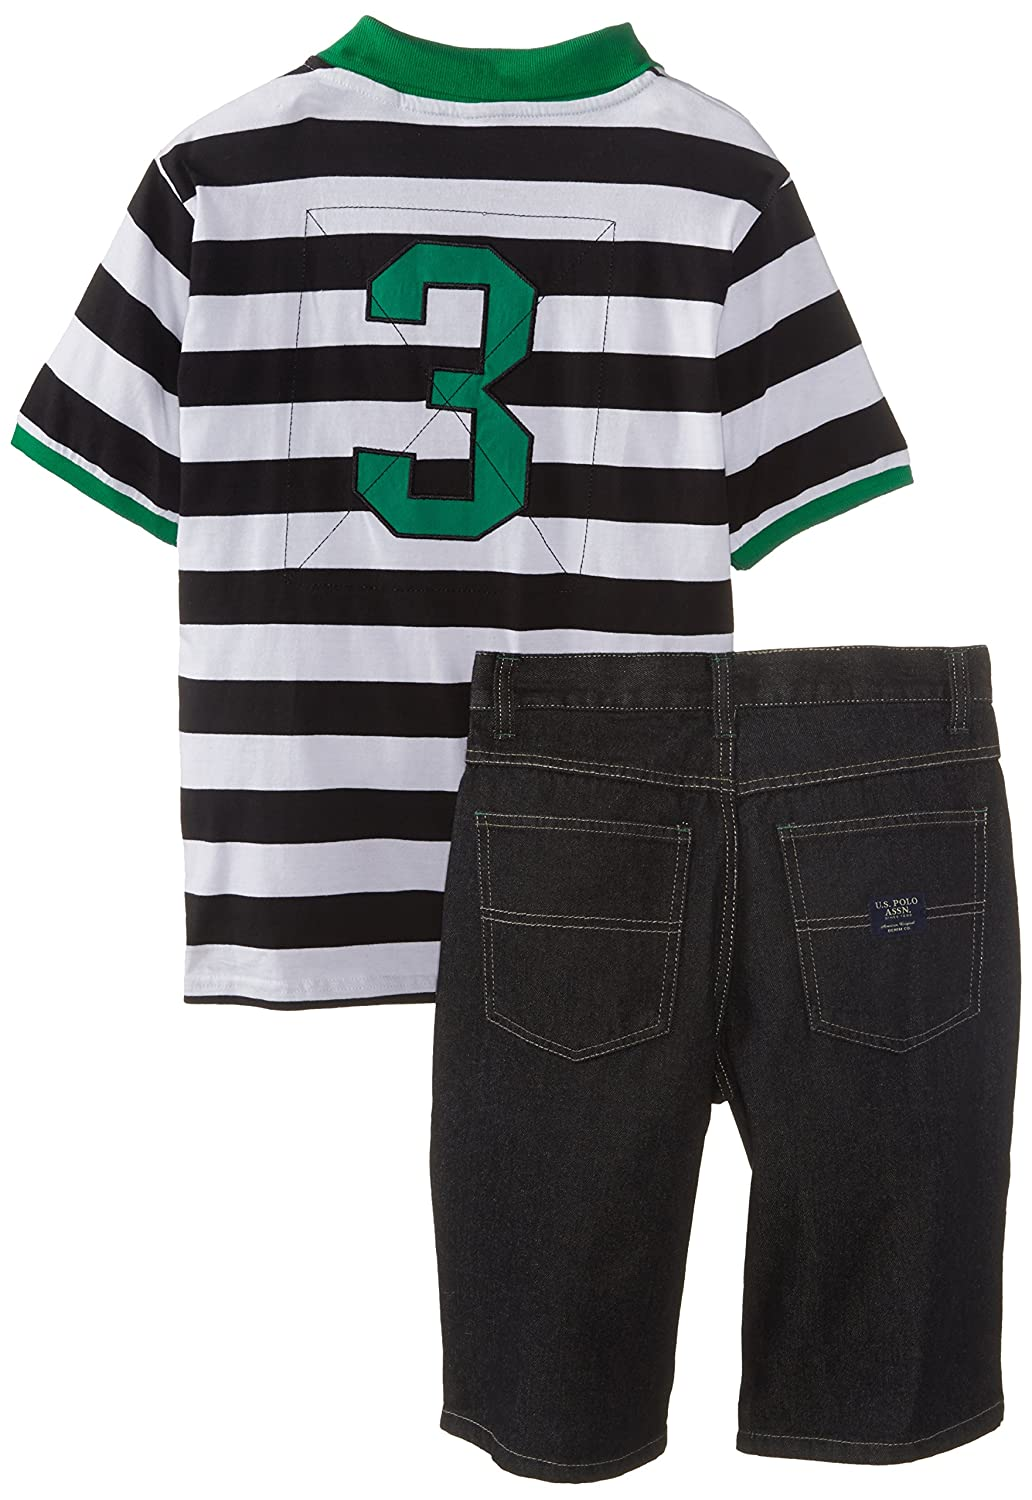 Polo Assn U.S Big Boys Wide Stripe Pique Polo Shirt and Denim Short Set US Polo Association Boys 8-20 WL05